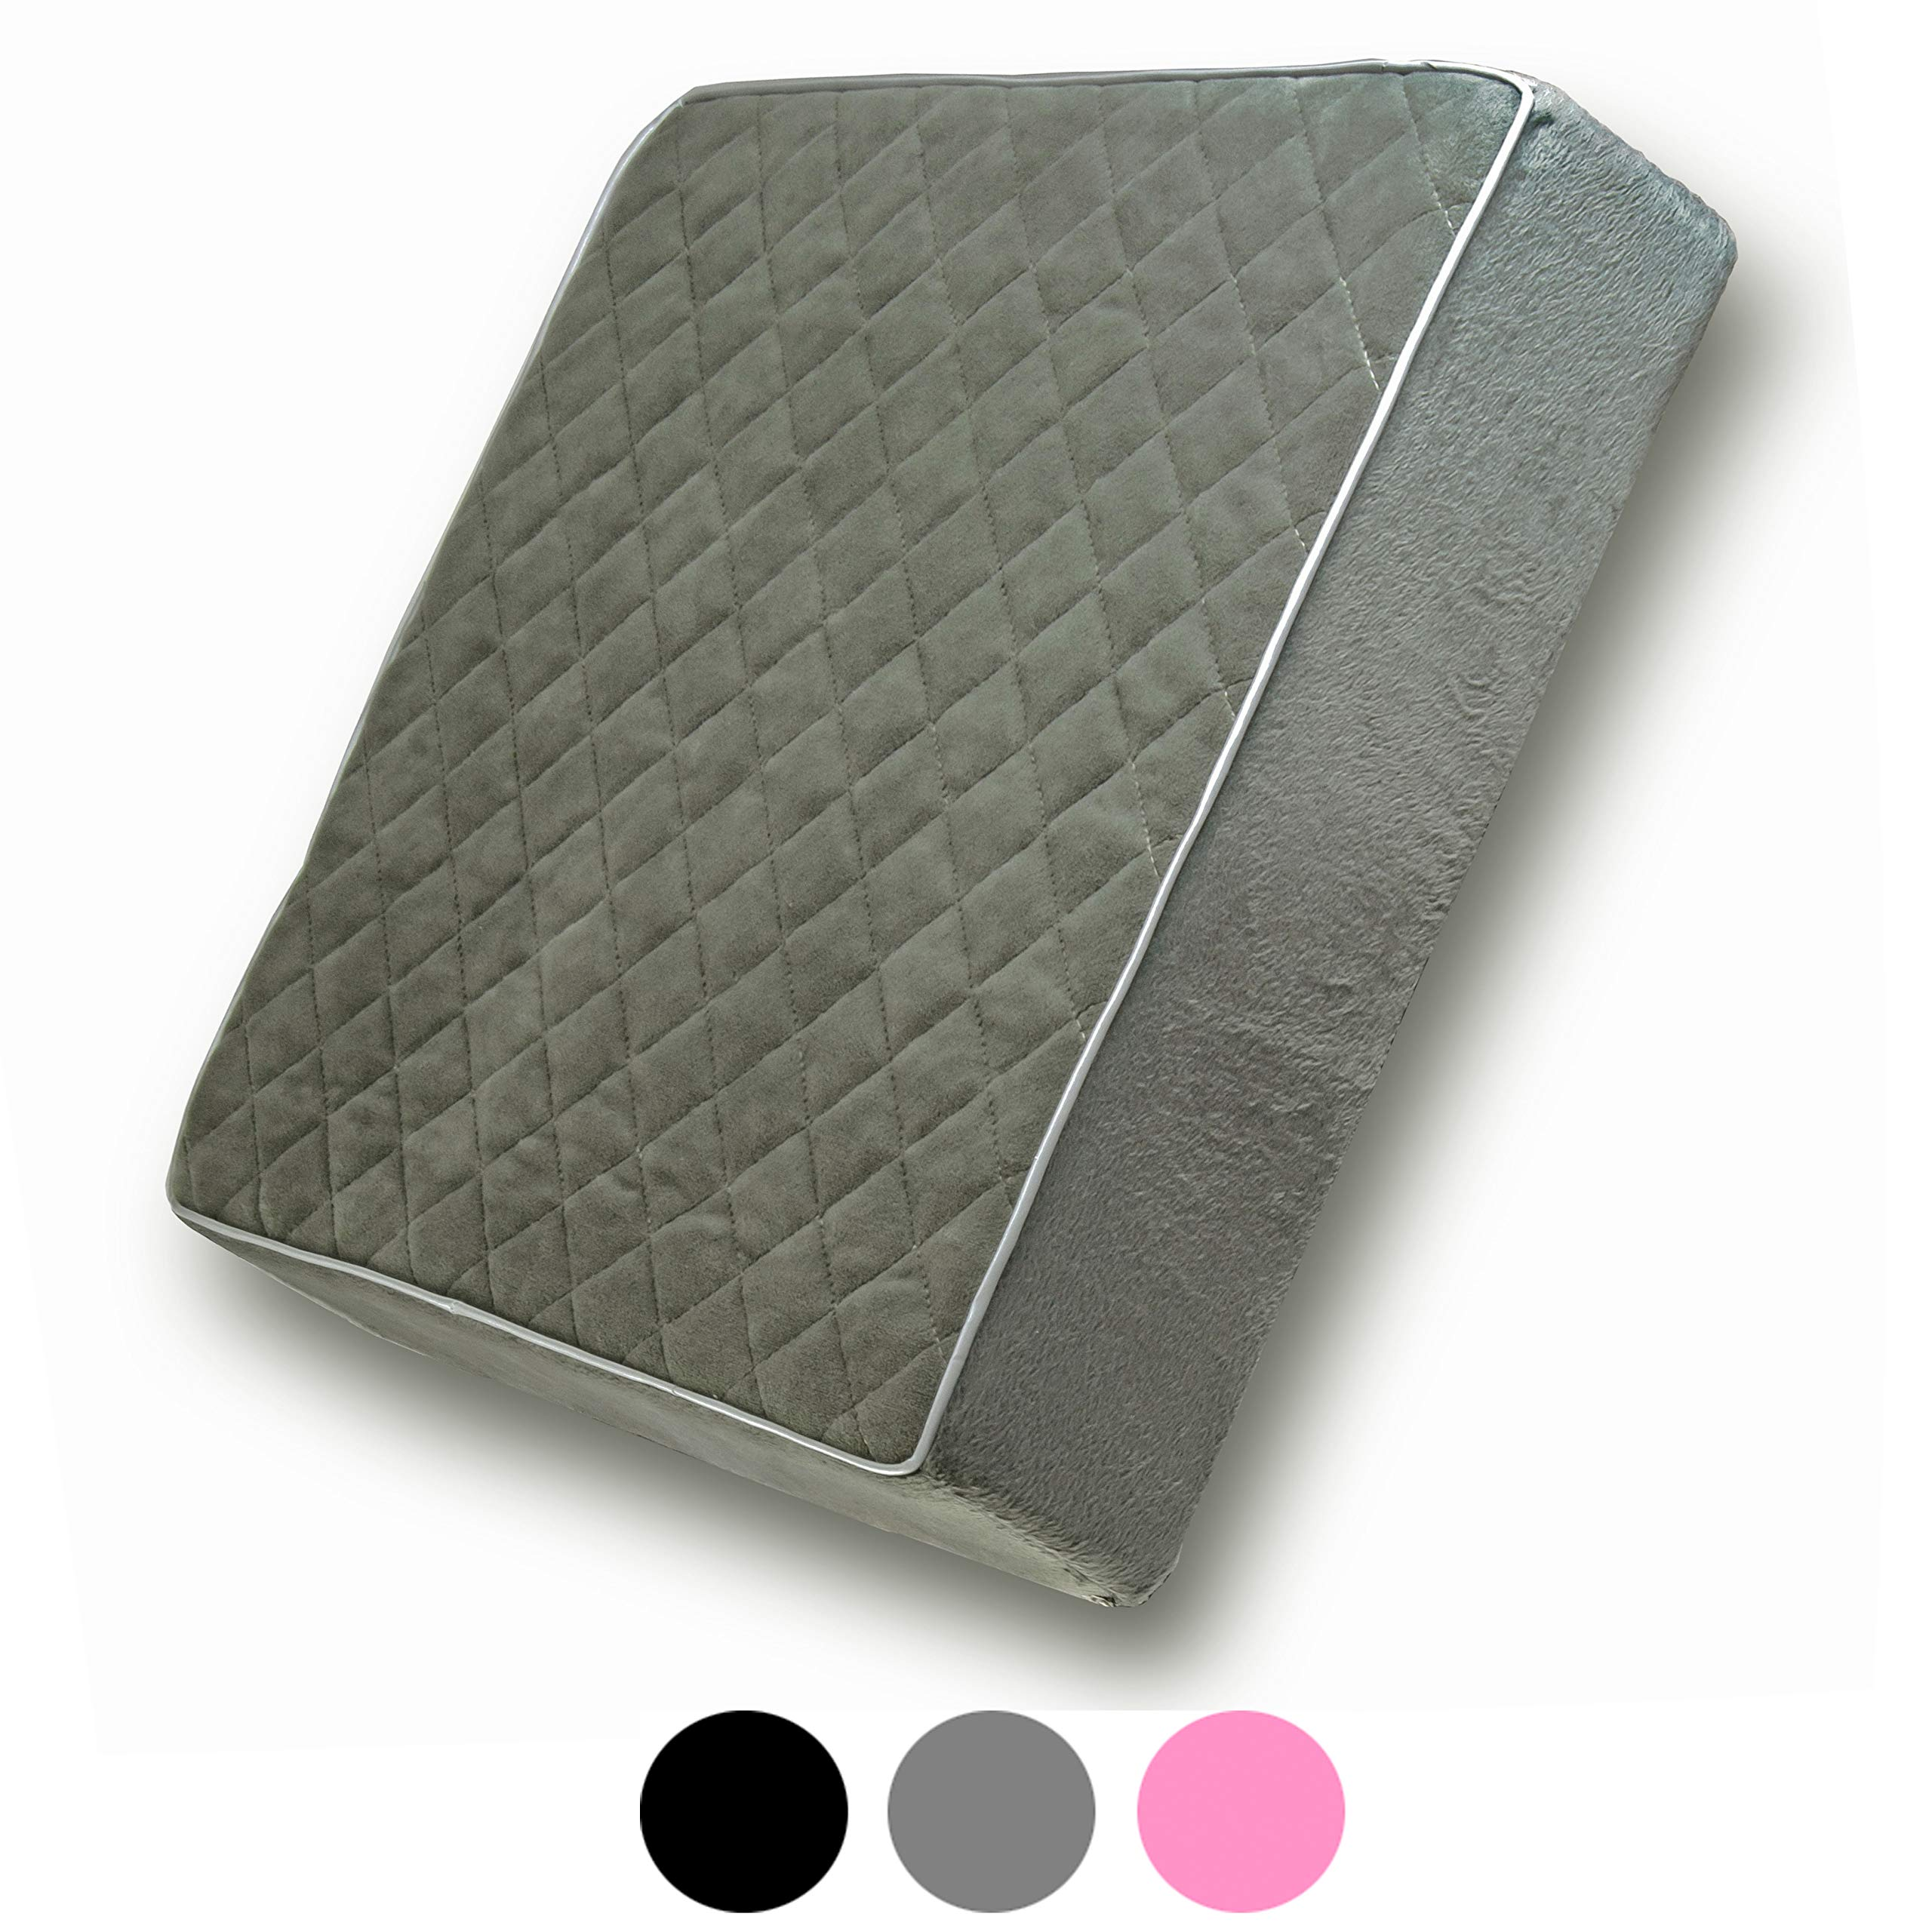 Comfortanza Chair Seat Cushion | 16x16x3 Square Thick Foam Pads for Wooden Kitchen, Dining Chairs, Office & Car Seat | Comfort & Back Pain Relief | Gray